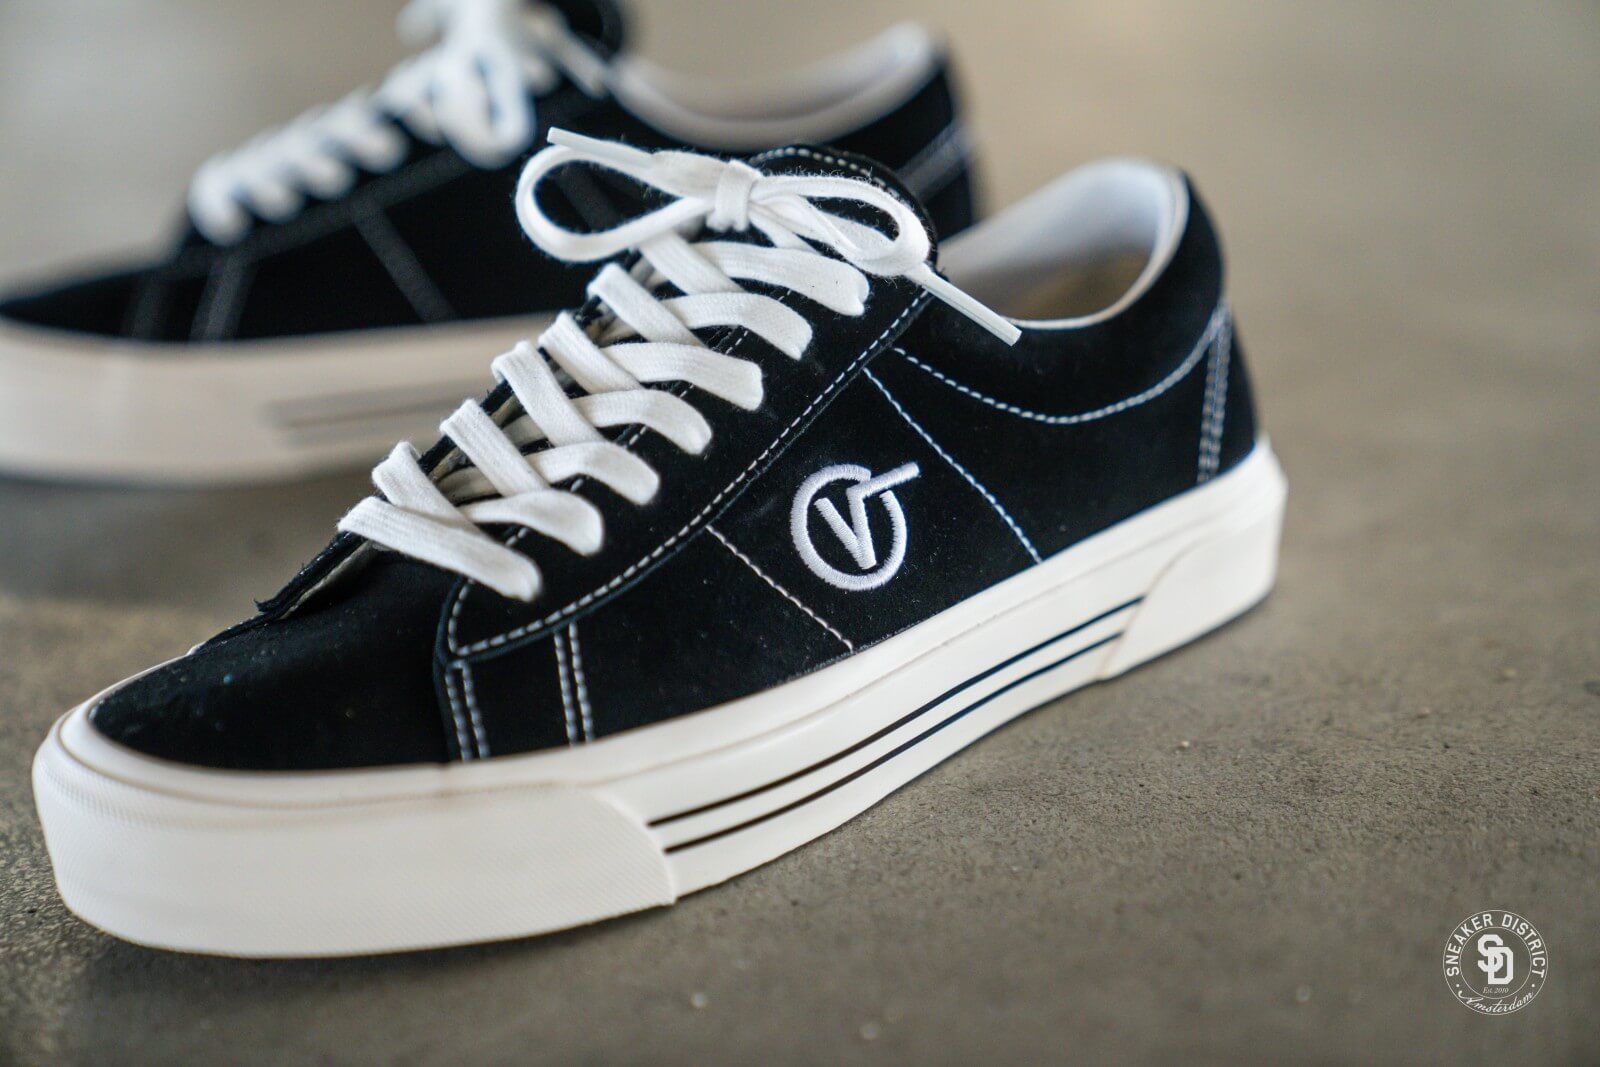 Vans Sid Dx Online Store, UP TO 63% OFF